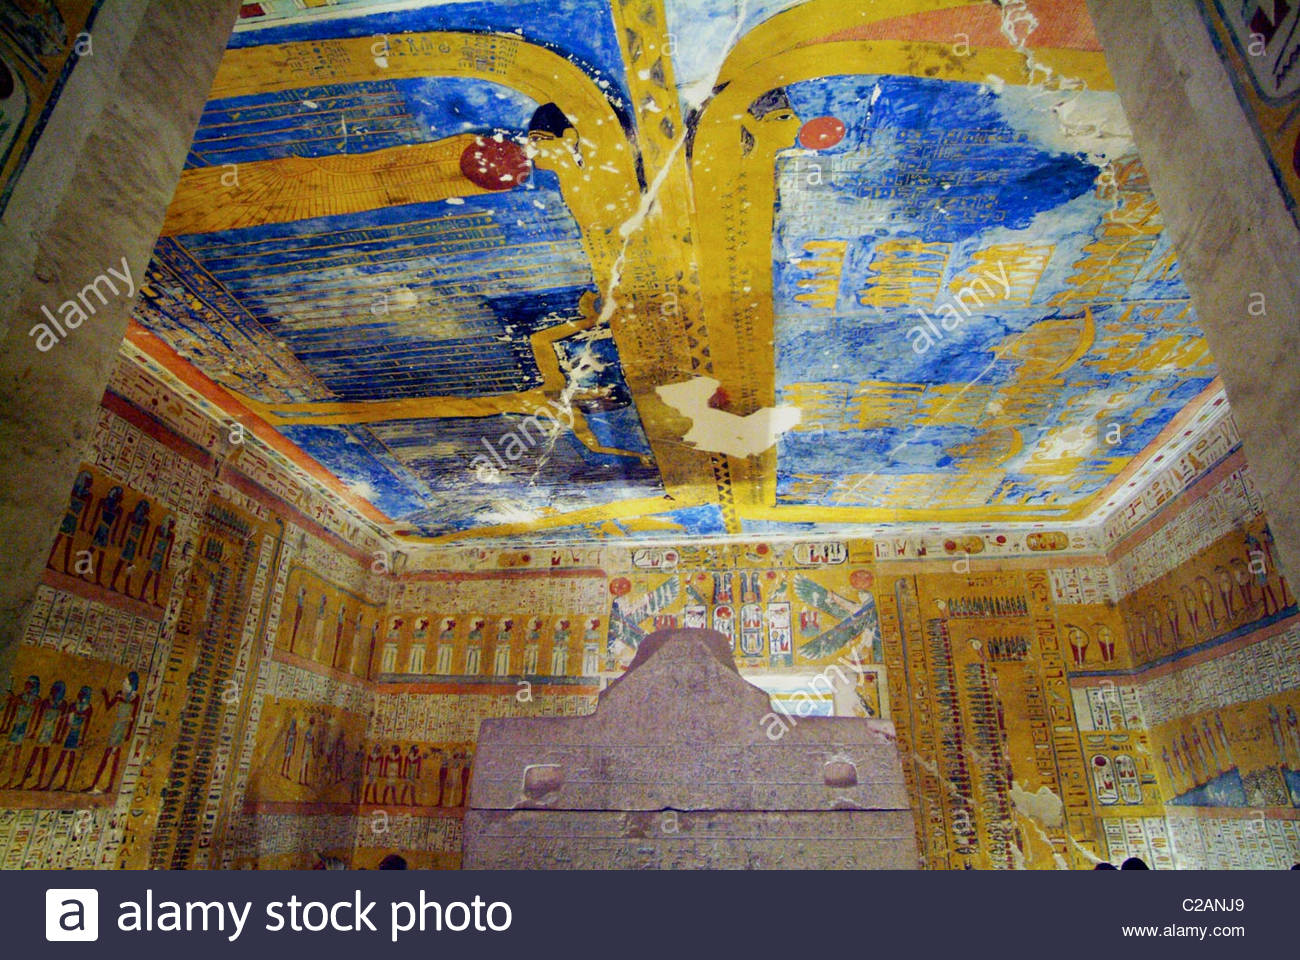 Painted detail inside the Tomb of Ramesses iV at Luxor. - Stock Image